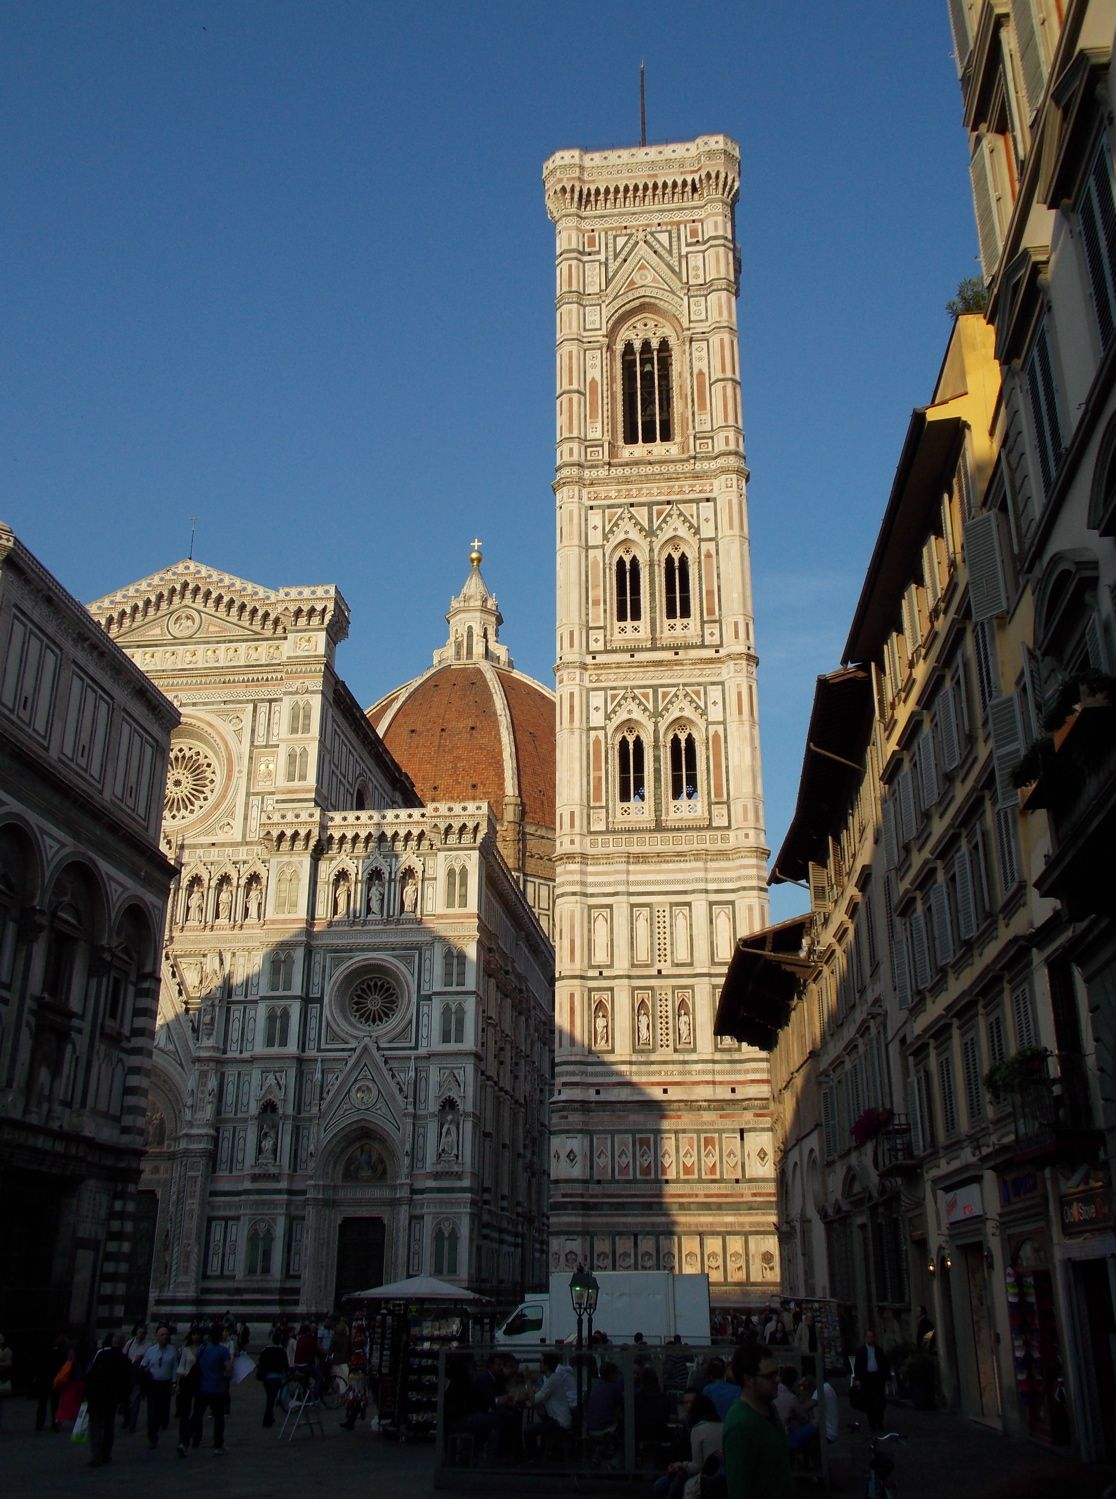 Duomo, late afternoon